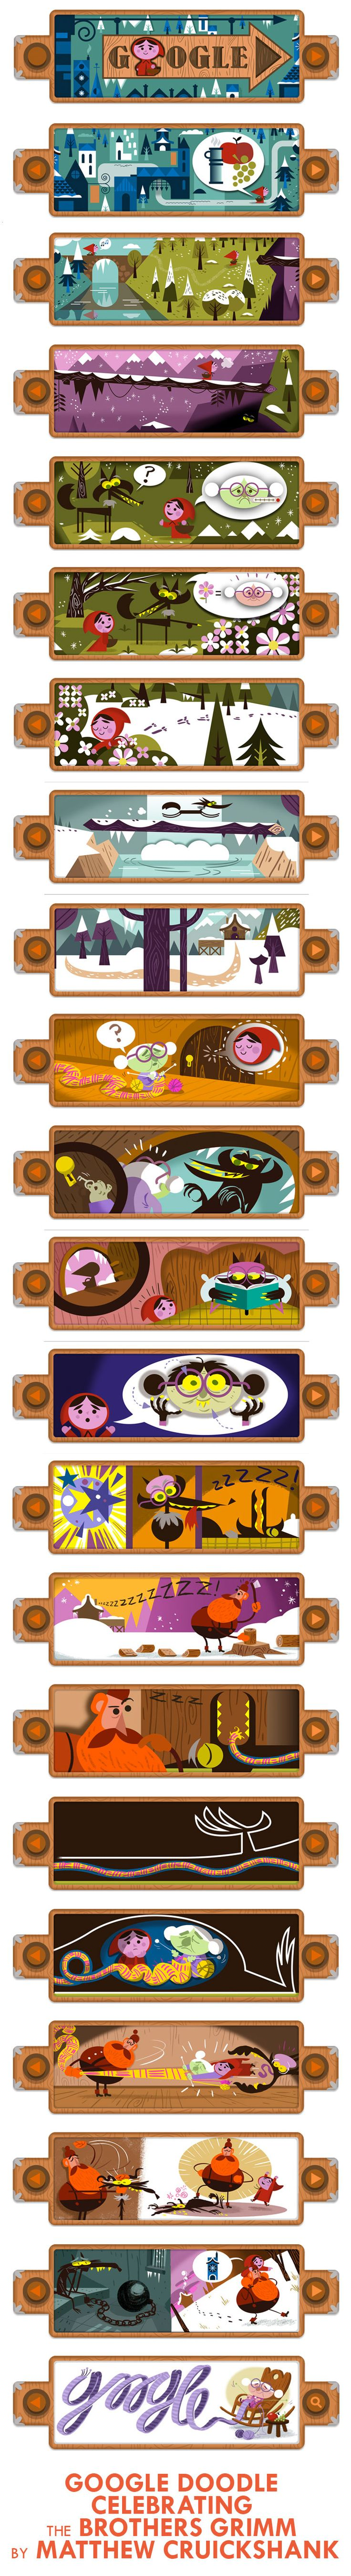 Google Doodle by Matthew Cruickshank celebrating 200th Anniversary of Grimm's Fairy Tales through Little Red Riding Hood - December 20, 2012